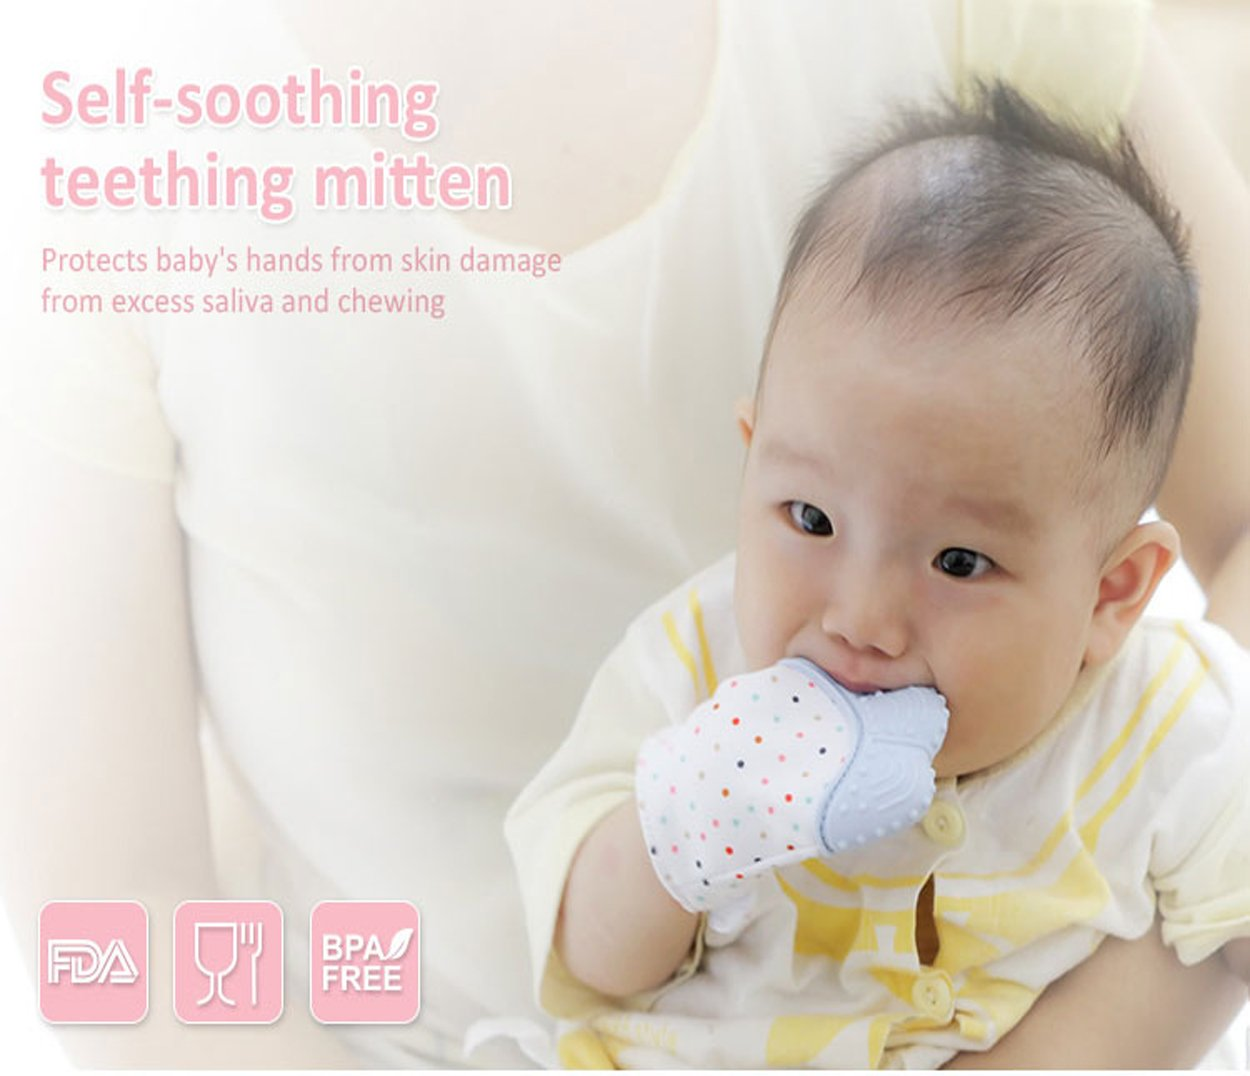 SOYAR Colorful Baby Teething Mittens,Baby Teether Soothing Pain Relief Age 3-12 Months Protects Babys Hands from Salvia /& Chewing Secure Adjustable Strap.-Quarlz Pink